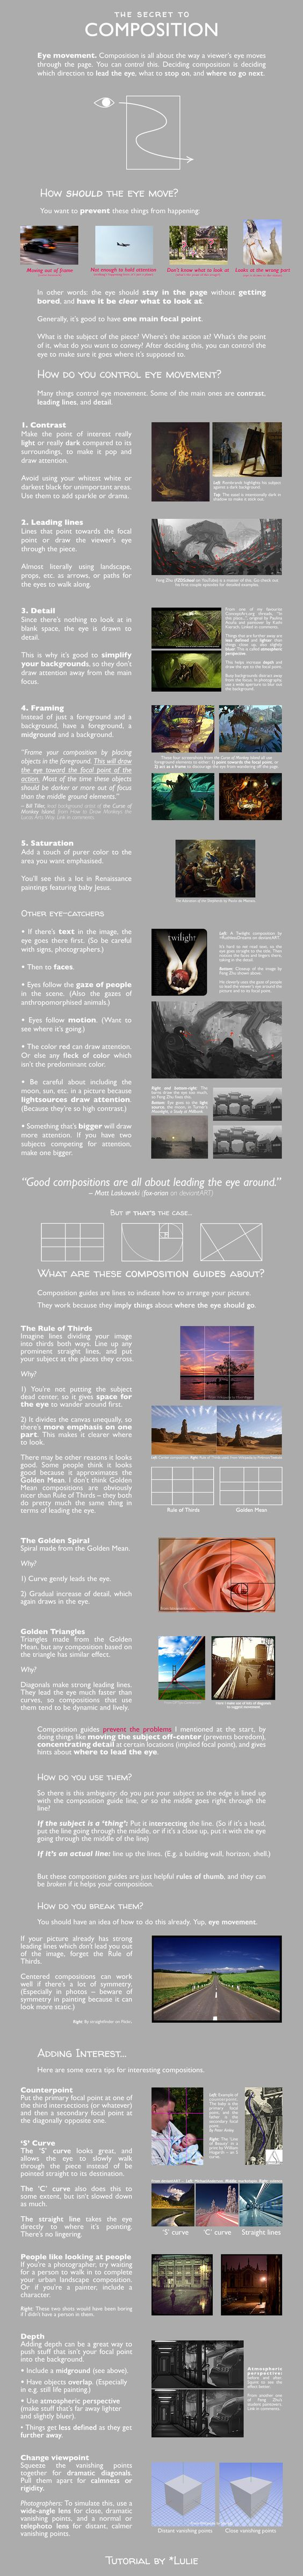 The Secret to Composition (Infographic)